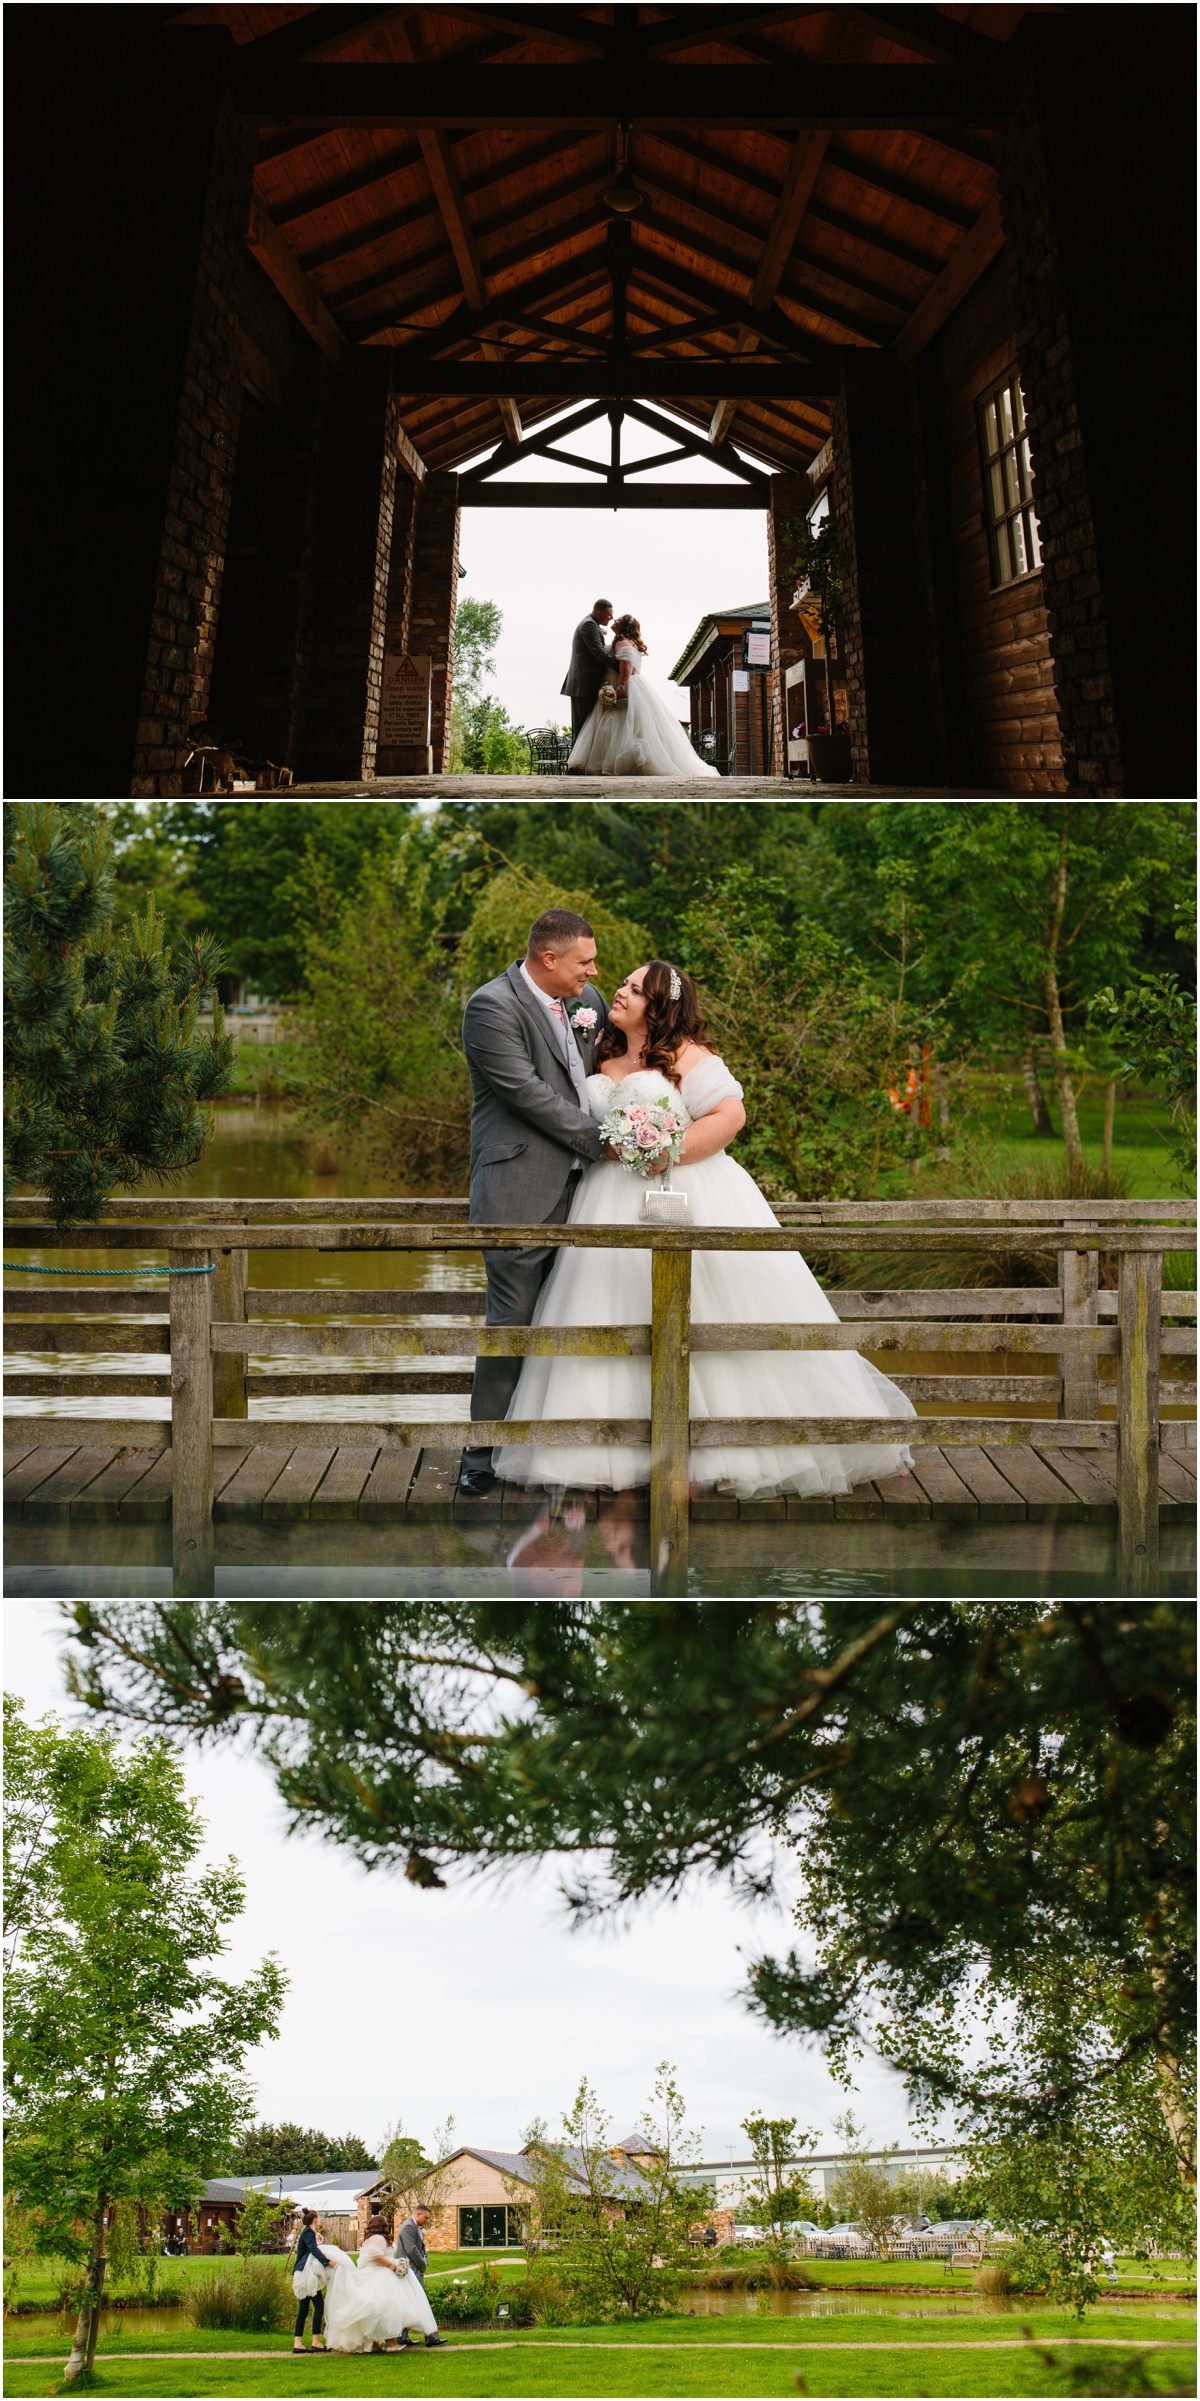 wedding chornock farm photograpy lancashire